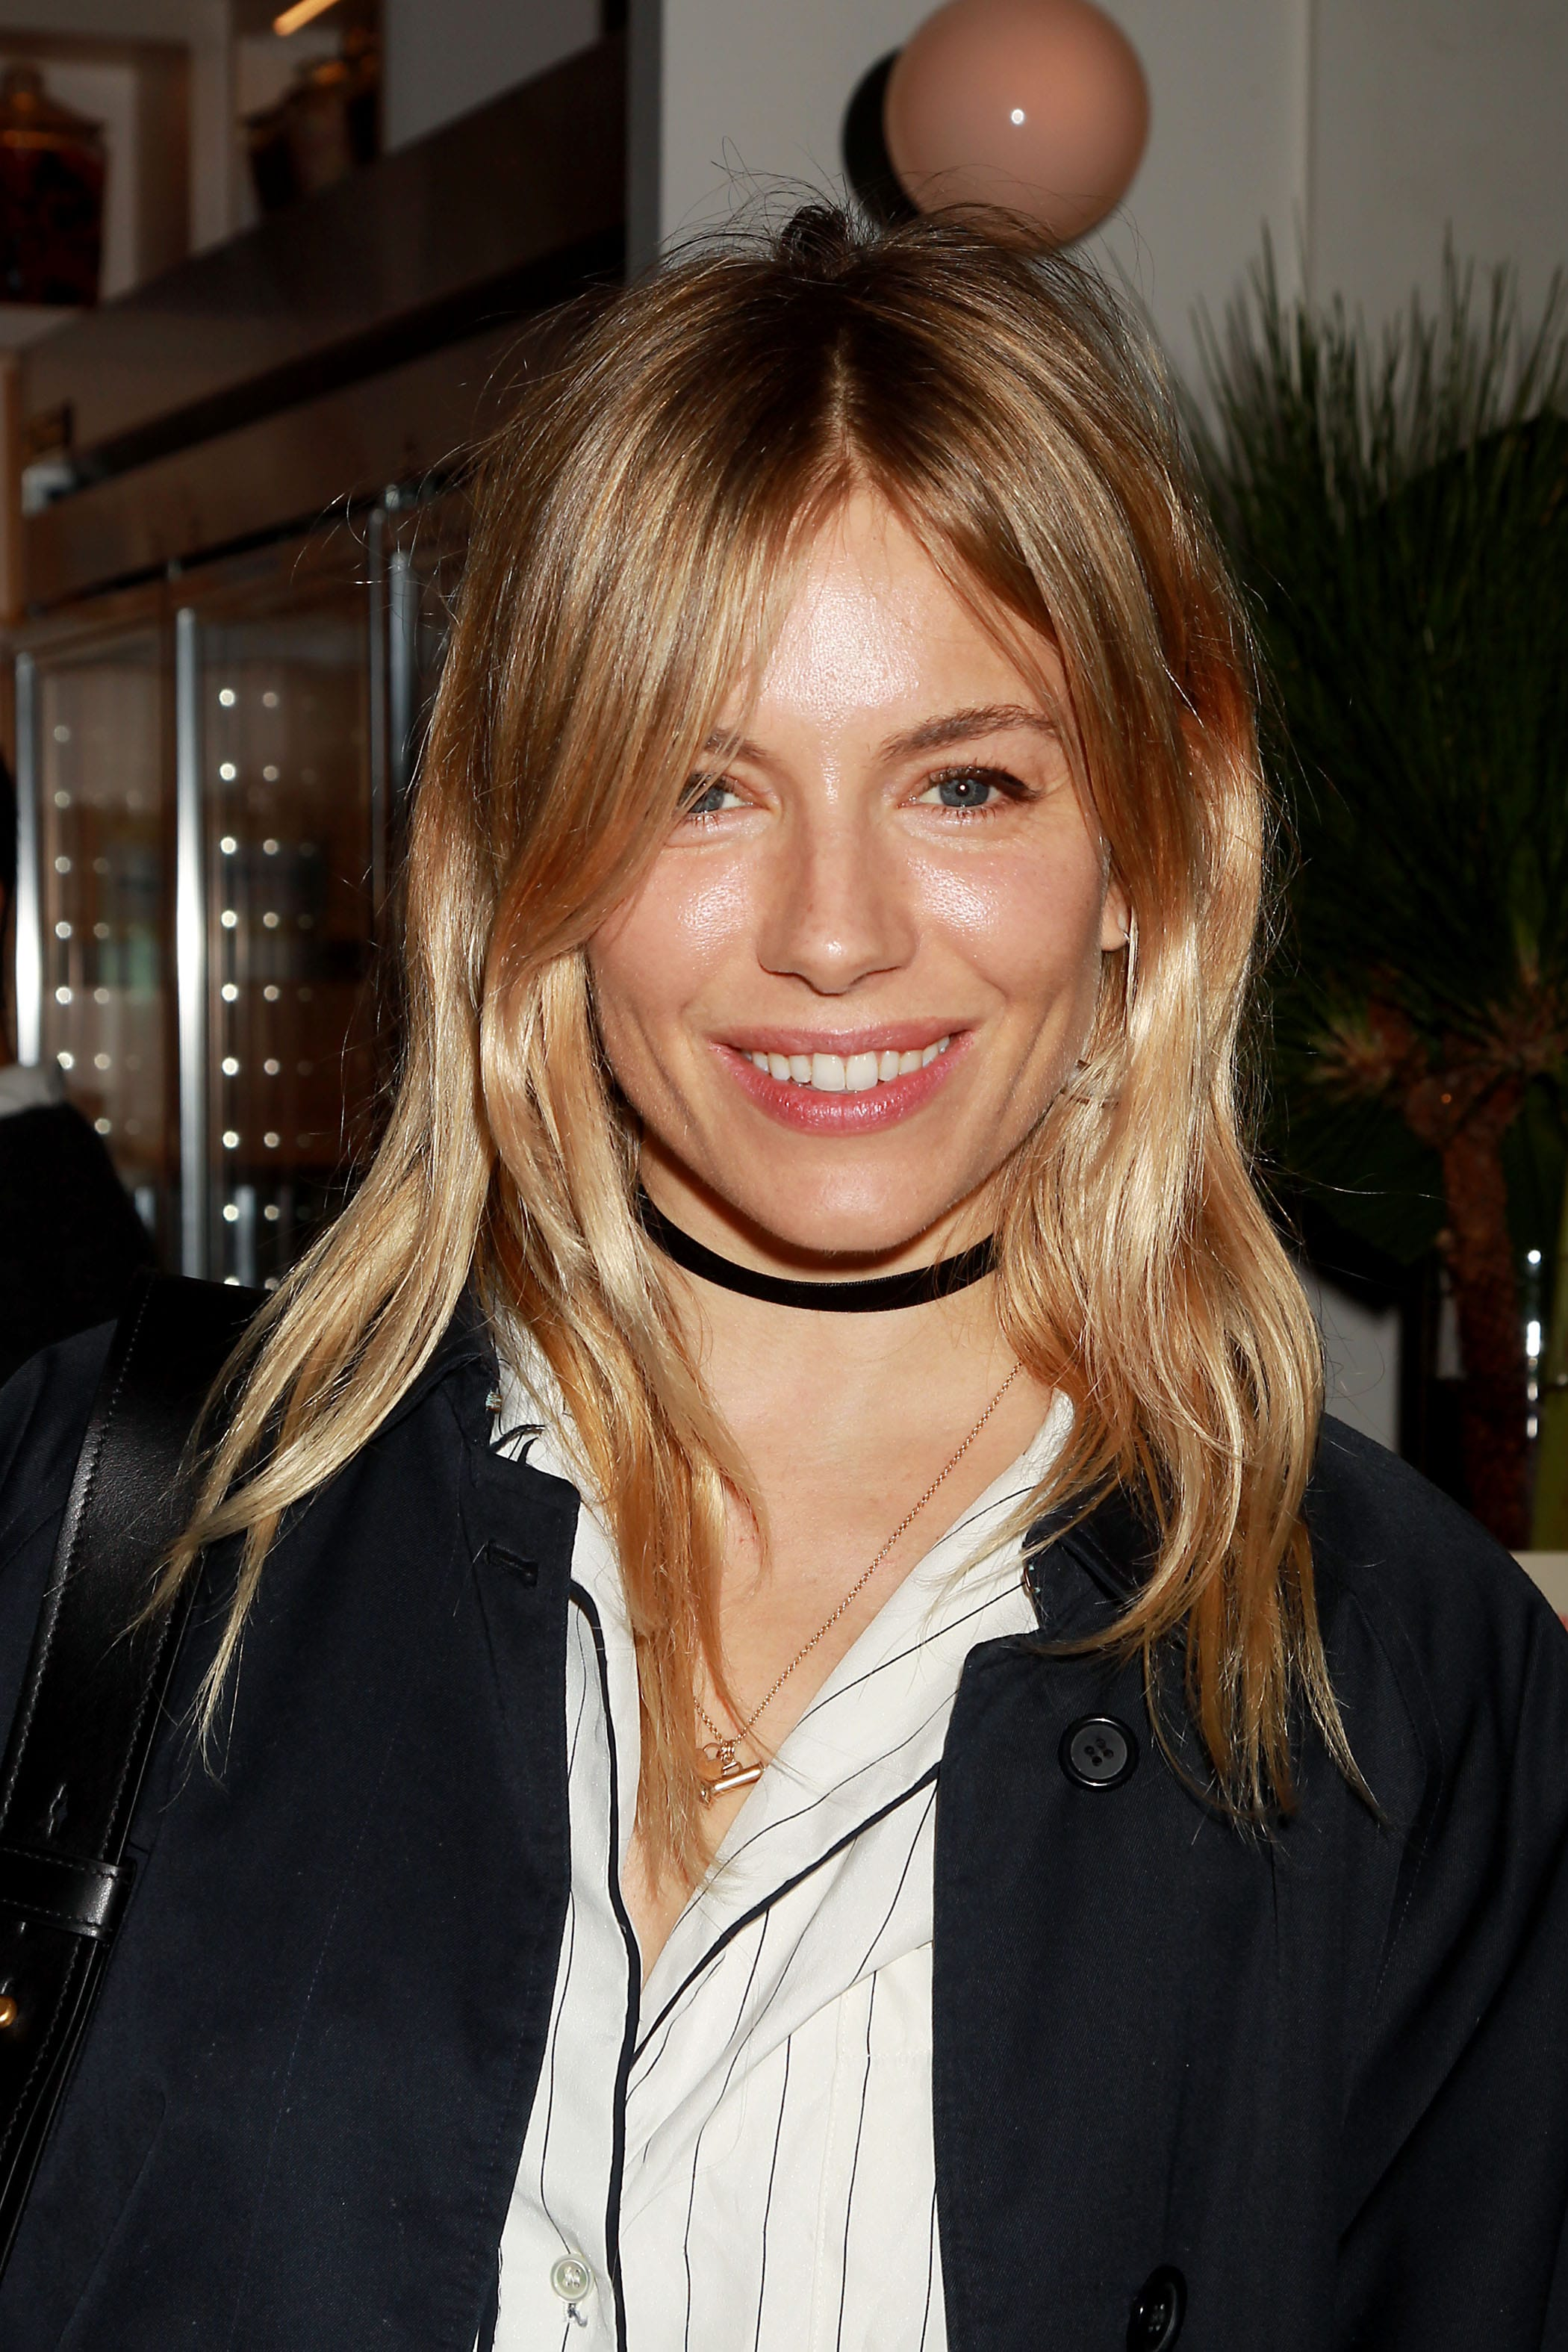 Sienna Miller at awards ceremony with iconic bangs hairstyle